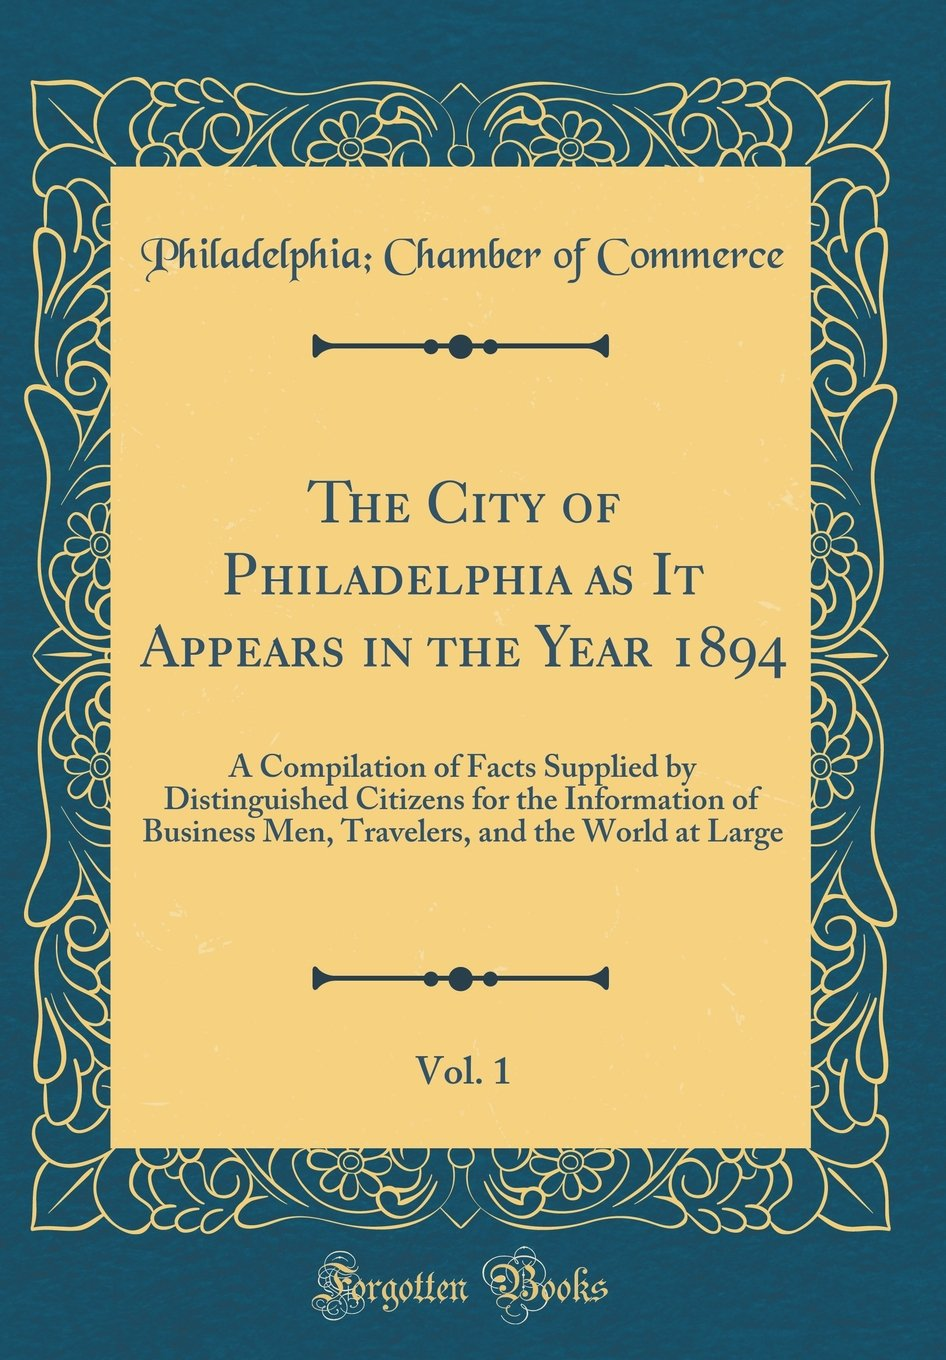 Download The City of Philadelphia as It Appears in the Year 1894, Vol. 1: A Compilation of Facts Supplied by Distinguished Citizens for the Information of ... and the World at Large (Classic Reprint) Text fb2 book